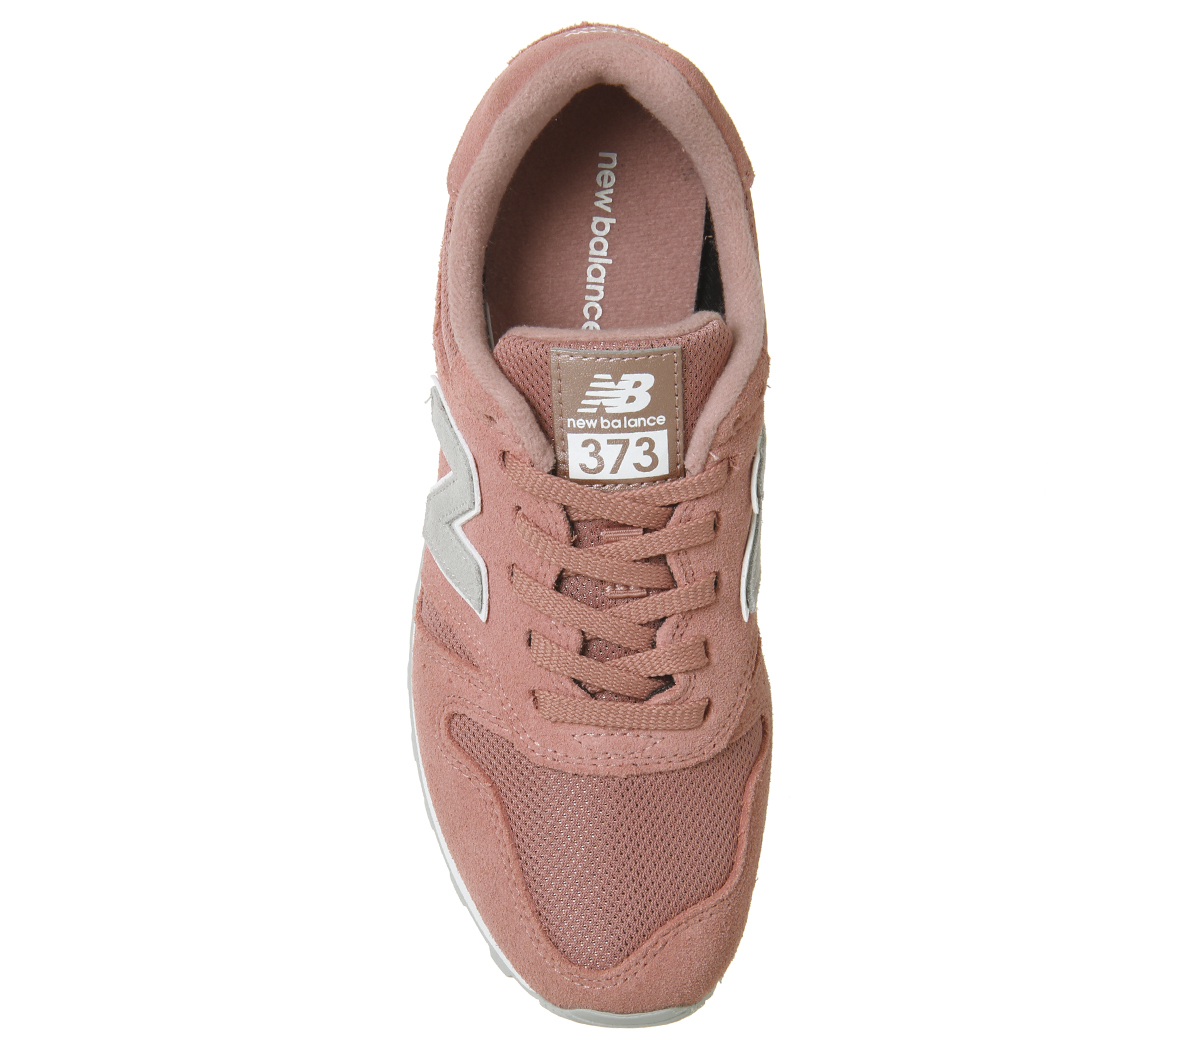 Womens-New-Balance-373-Trainers-Dusted-Peach-Trainers-Shoes